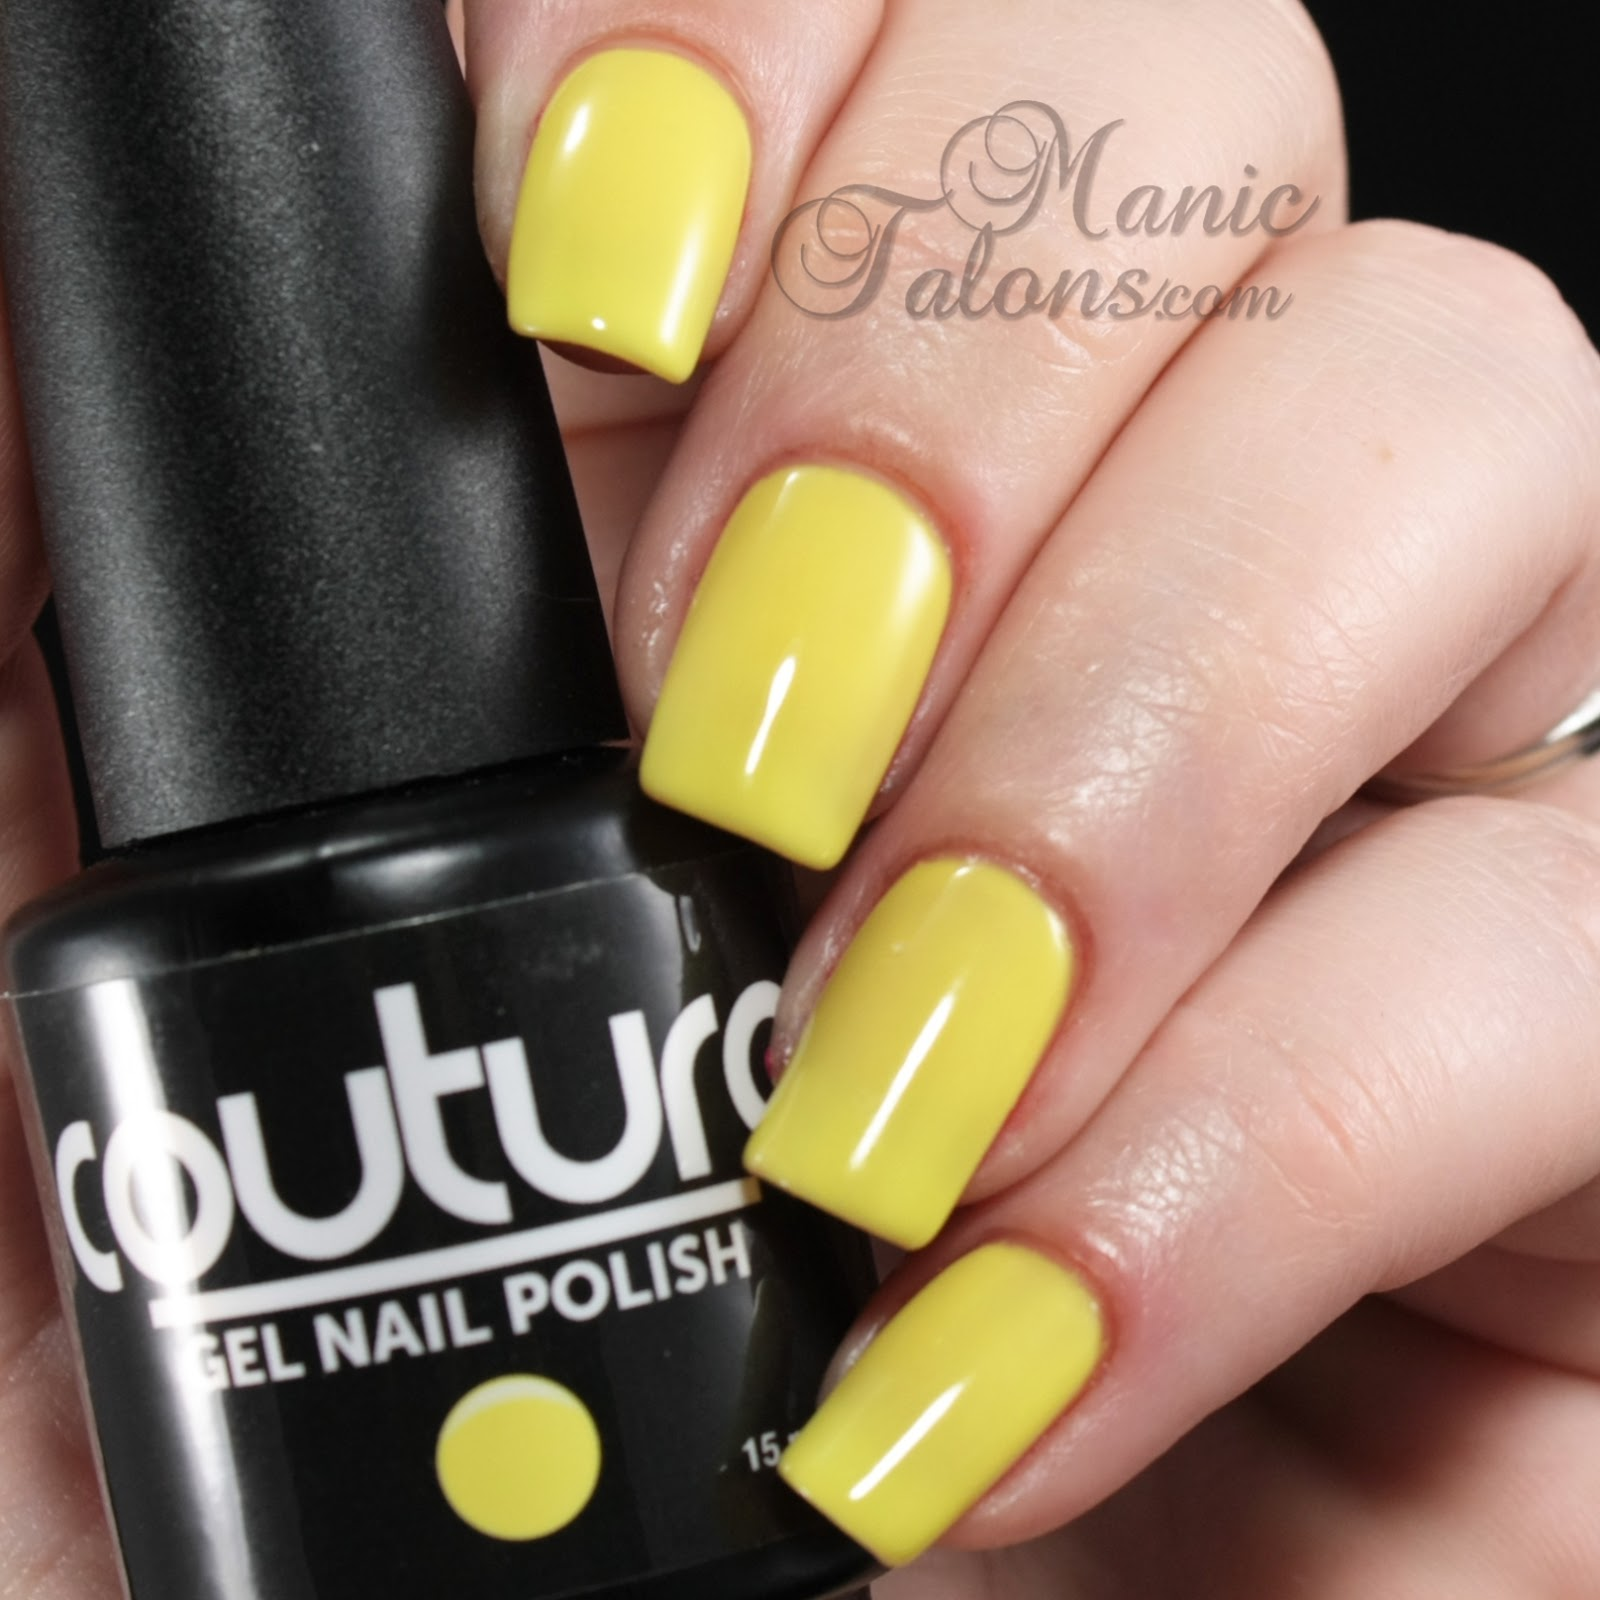 Couture Gel Polish Tres Chic Swatch